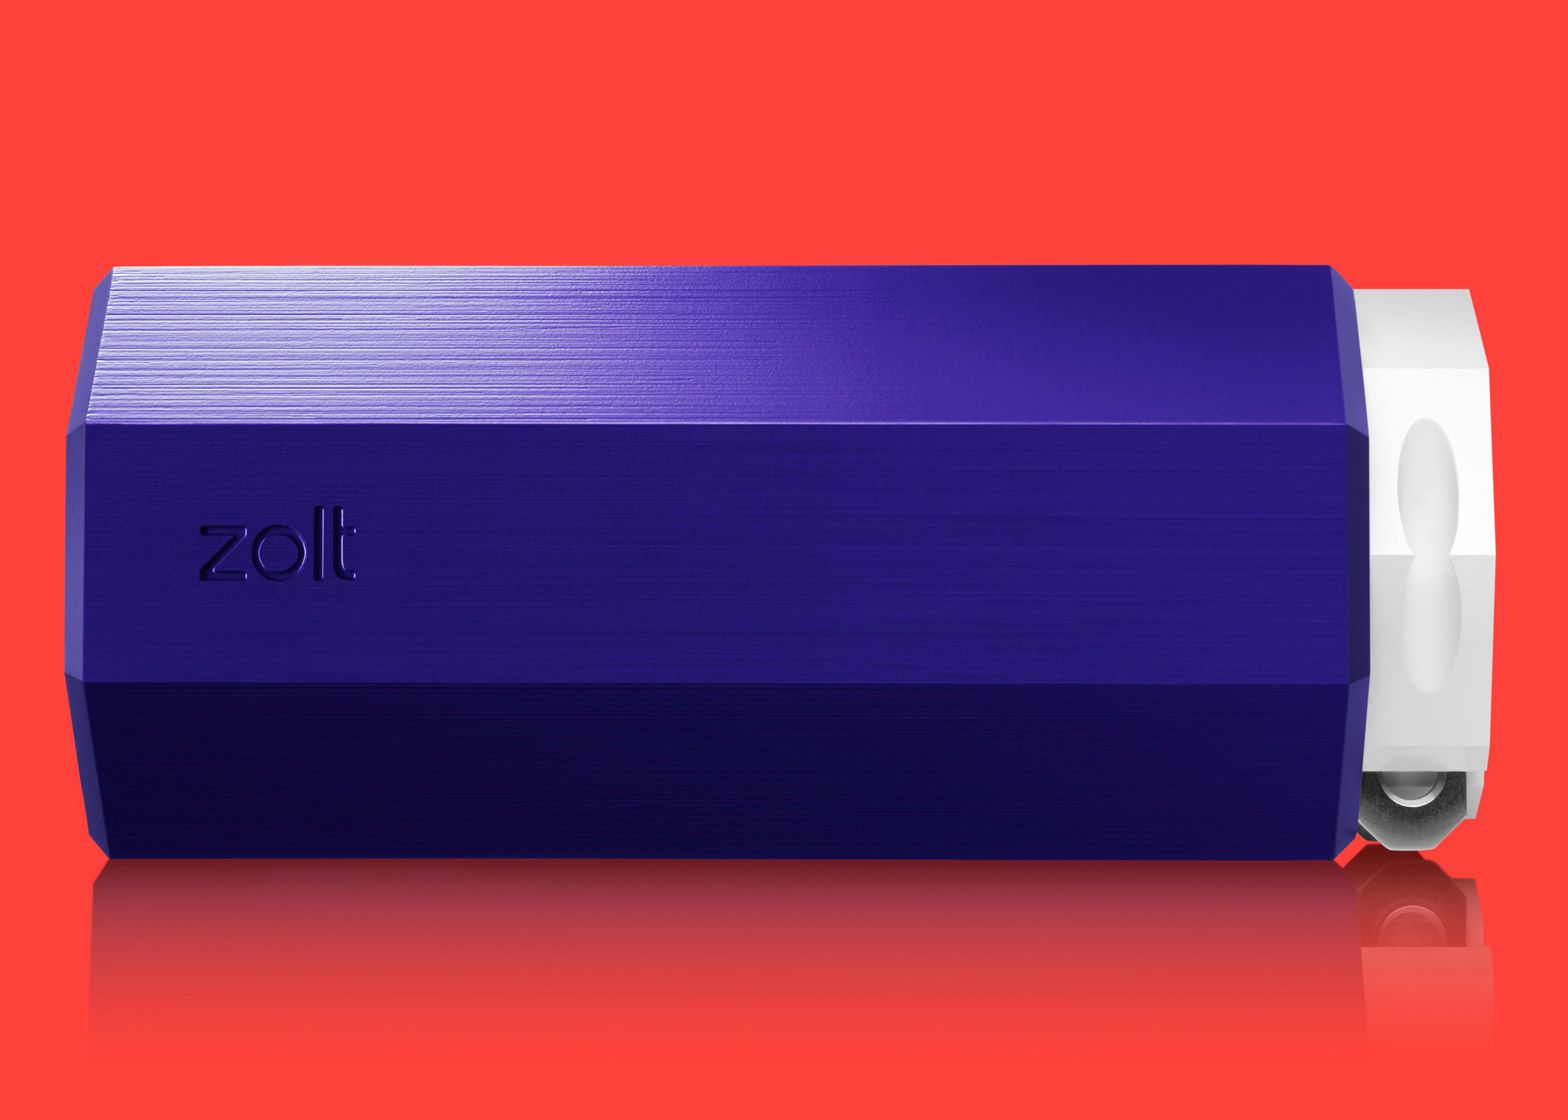 Zolt charger by Yves Behar powers three devices